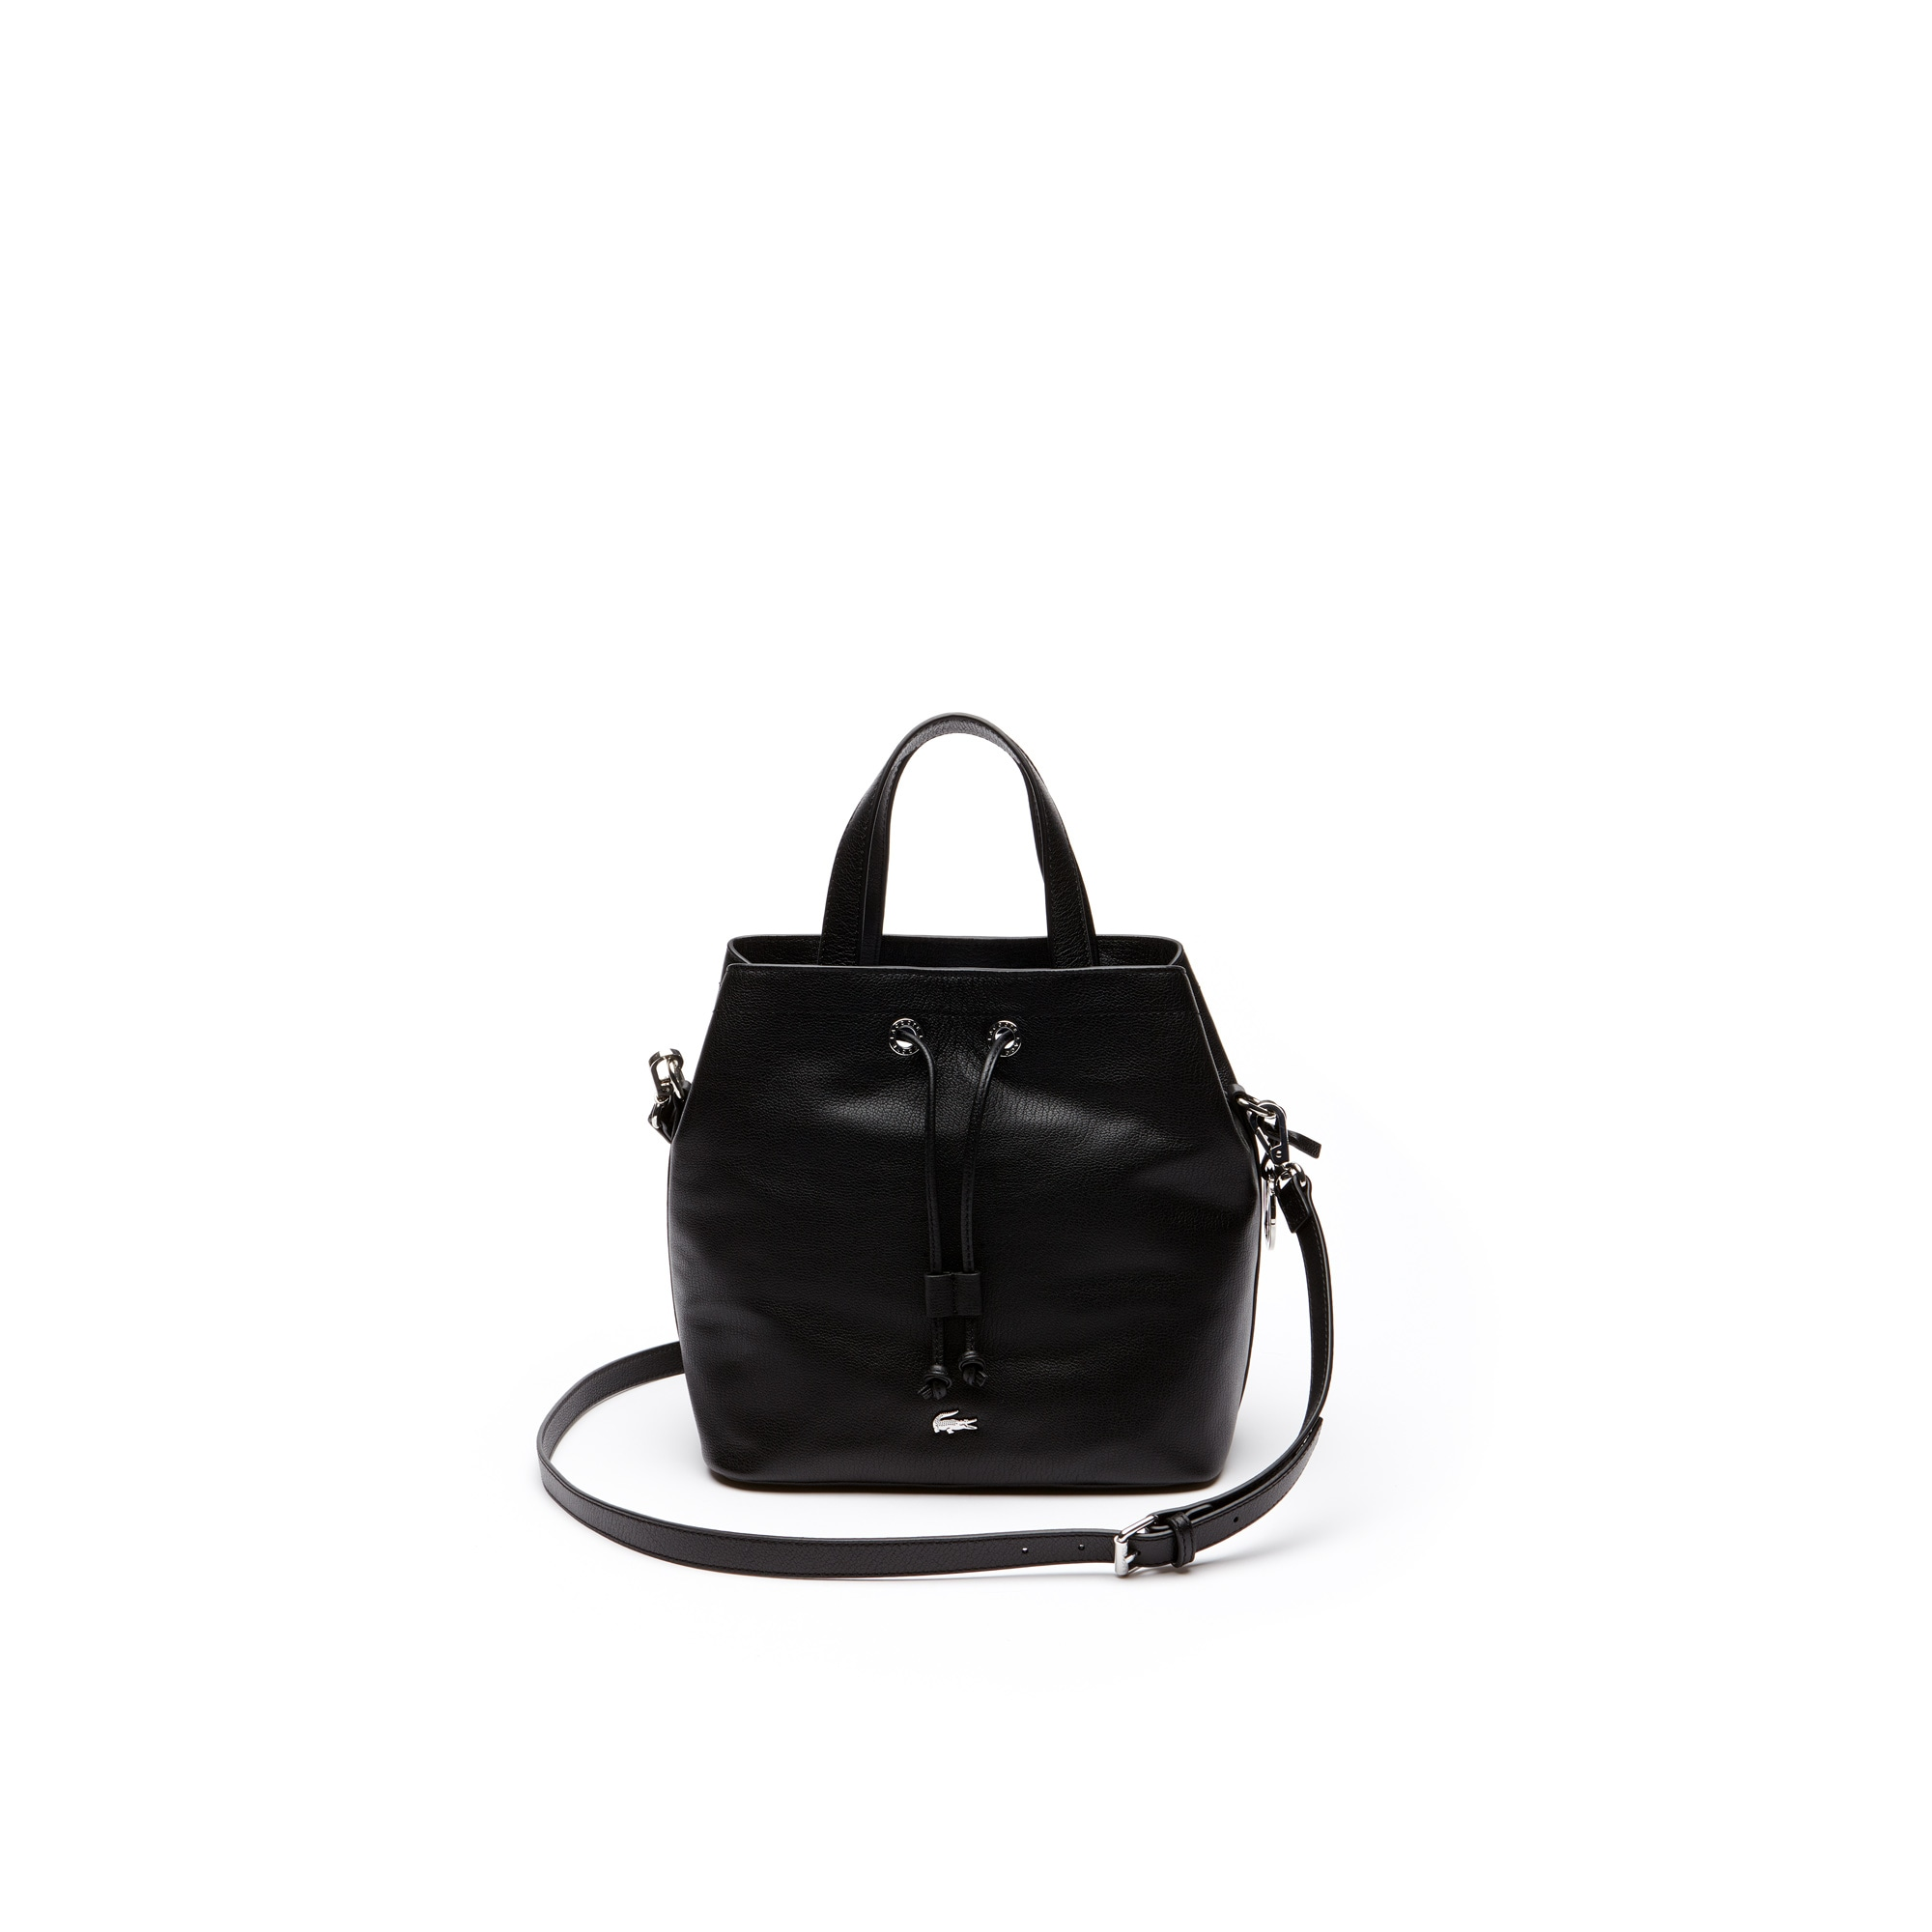 Women's Break Point Colorblock Leather Bucket Bag